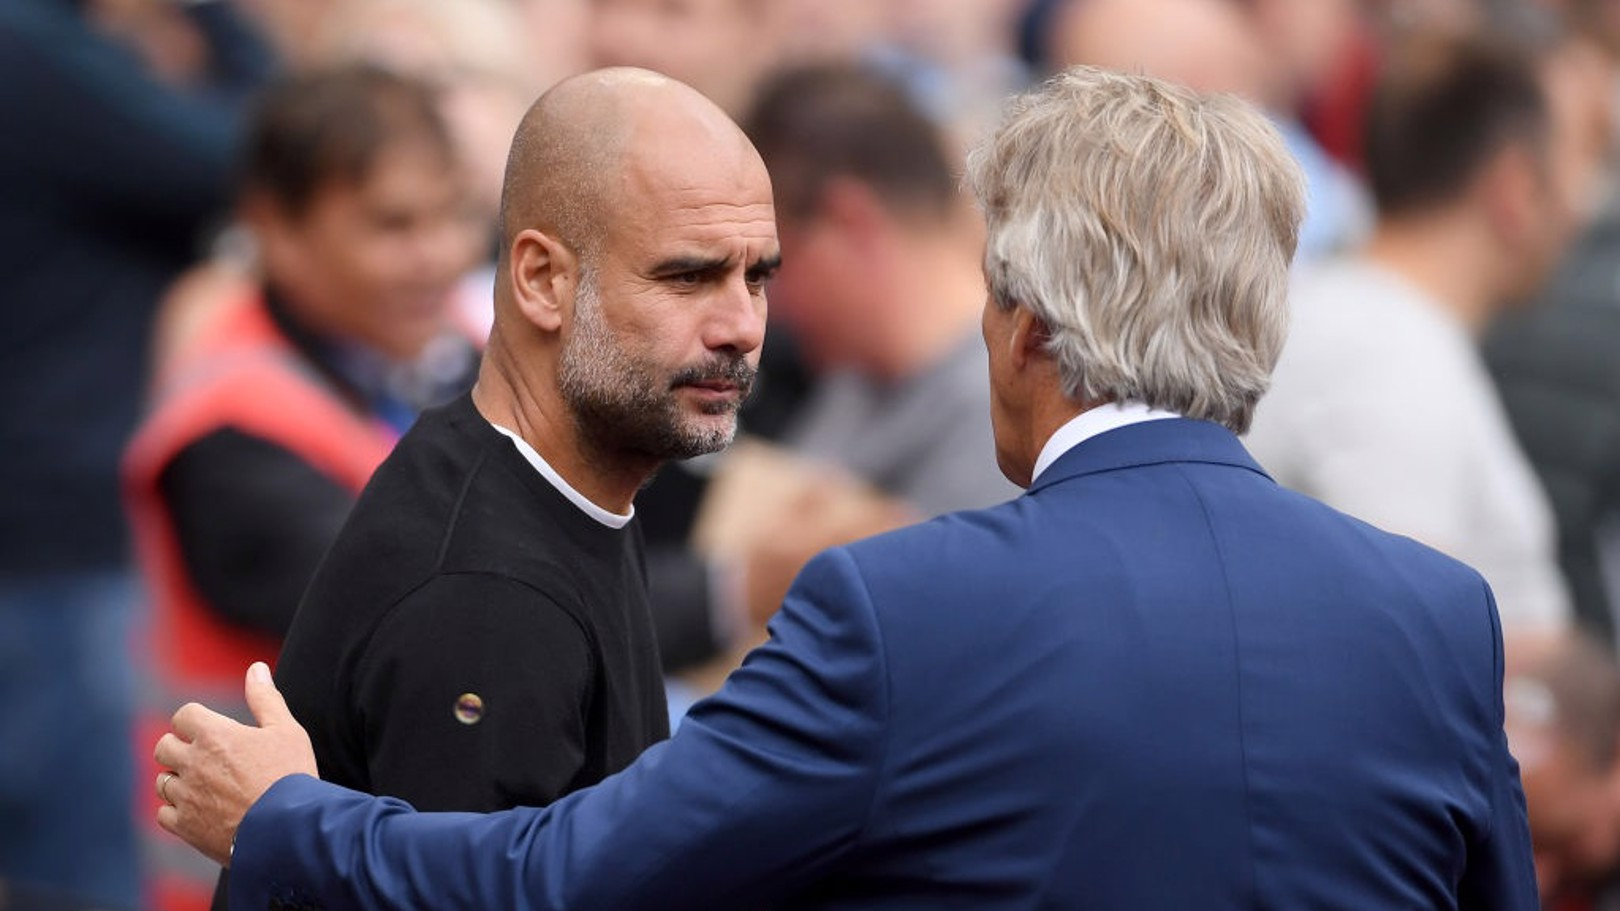 PAST AND PRESENT: Pep Guardiola and Manuel Pellegrini shake hands on the touchline.